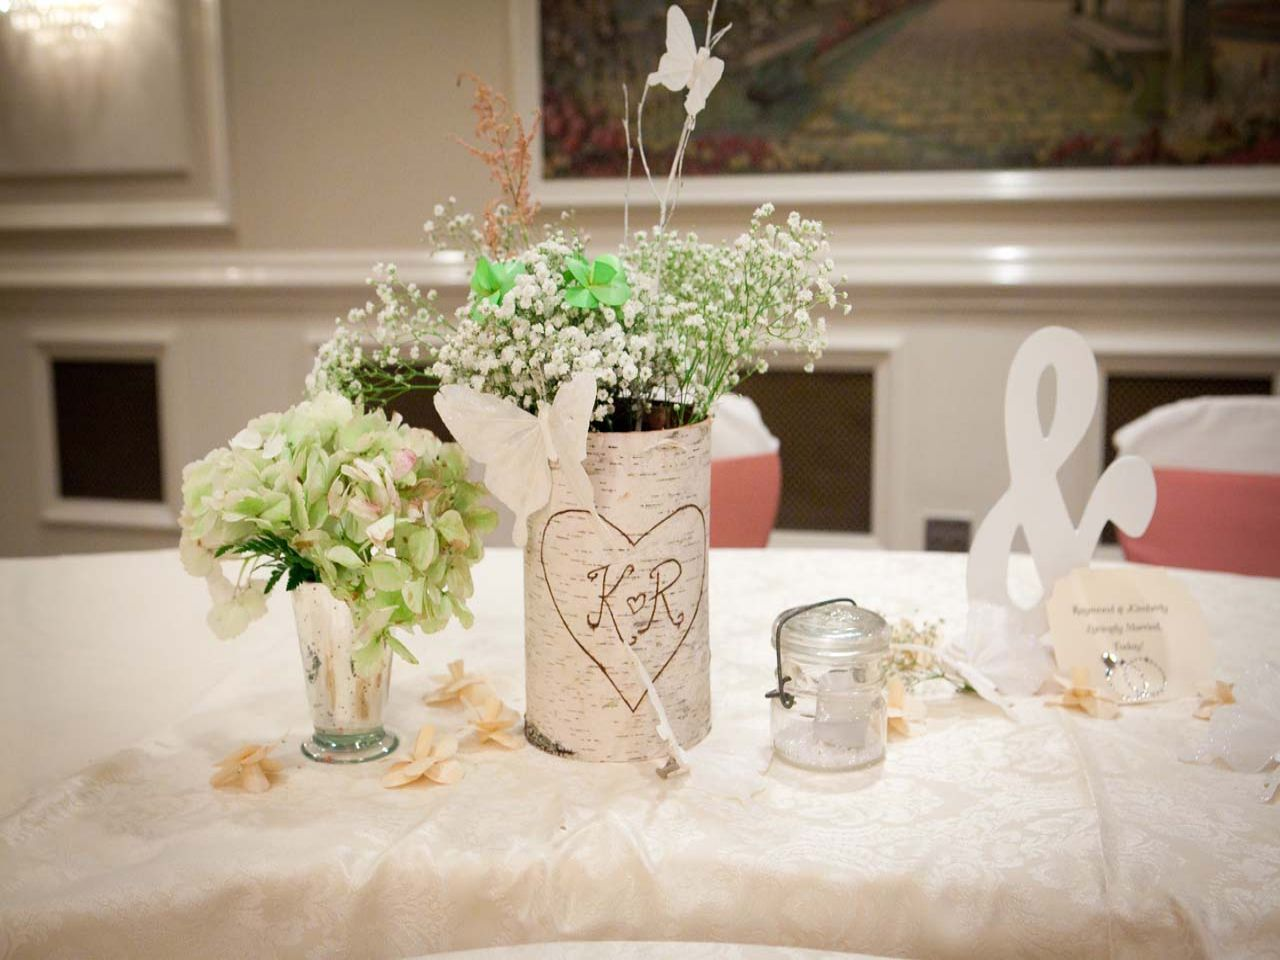 Diy Wedding Table Decorations Diy Wedding Decorations Pinterest